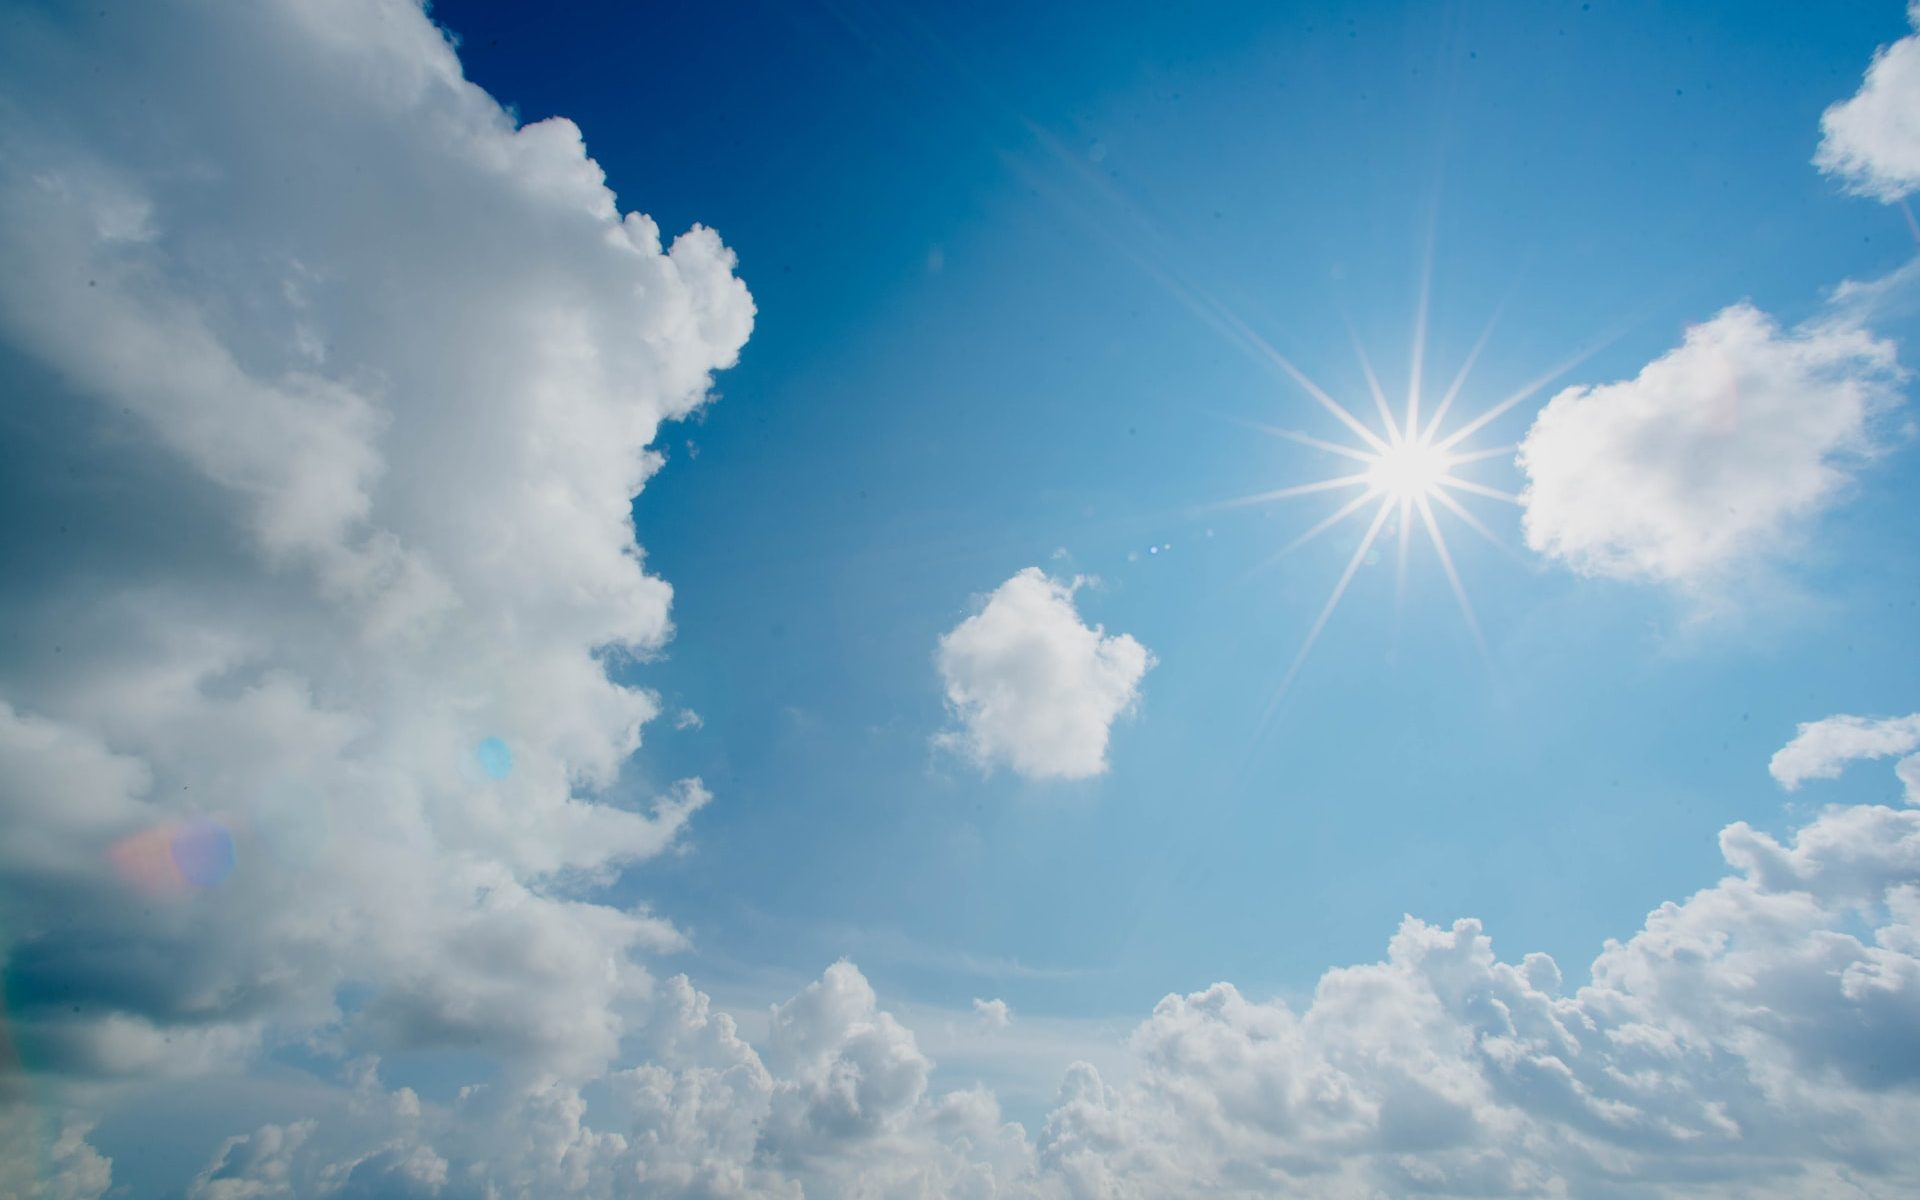 Sun shining in a blue sky with white clouds